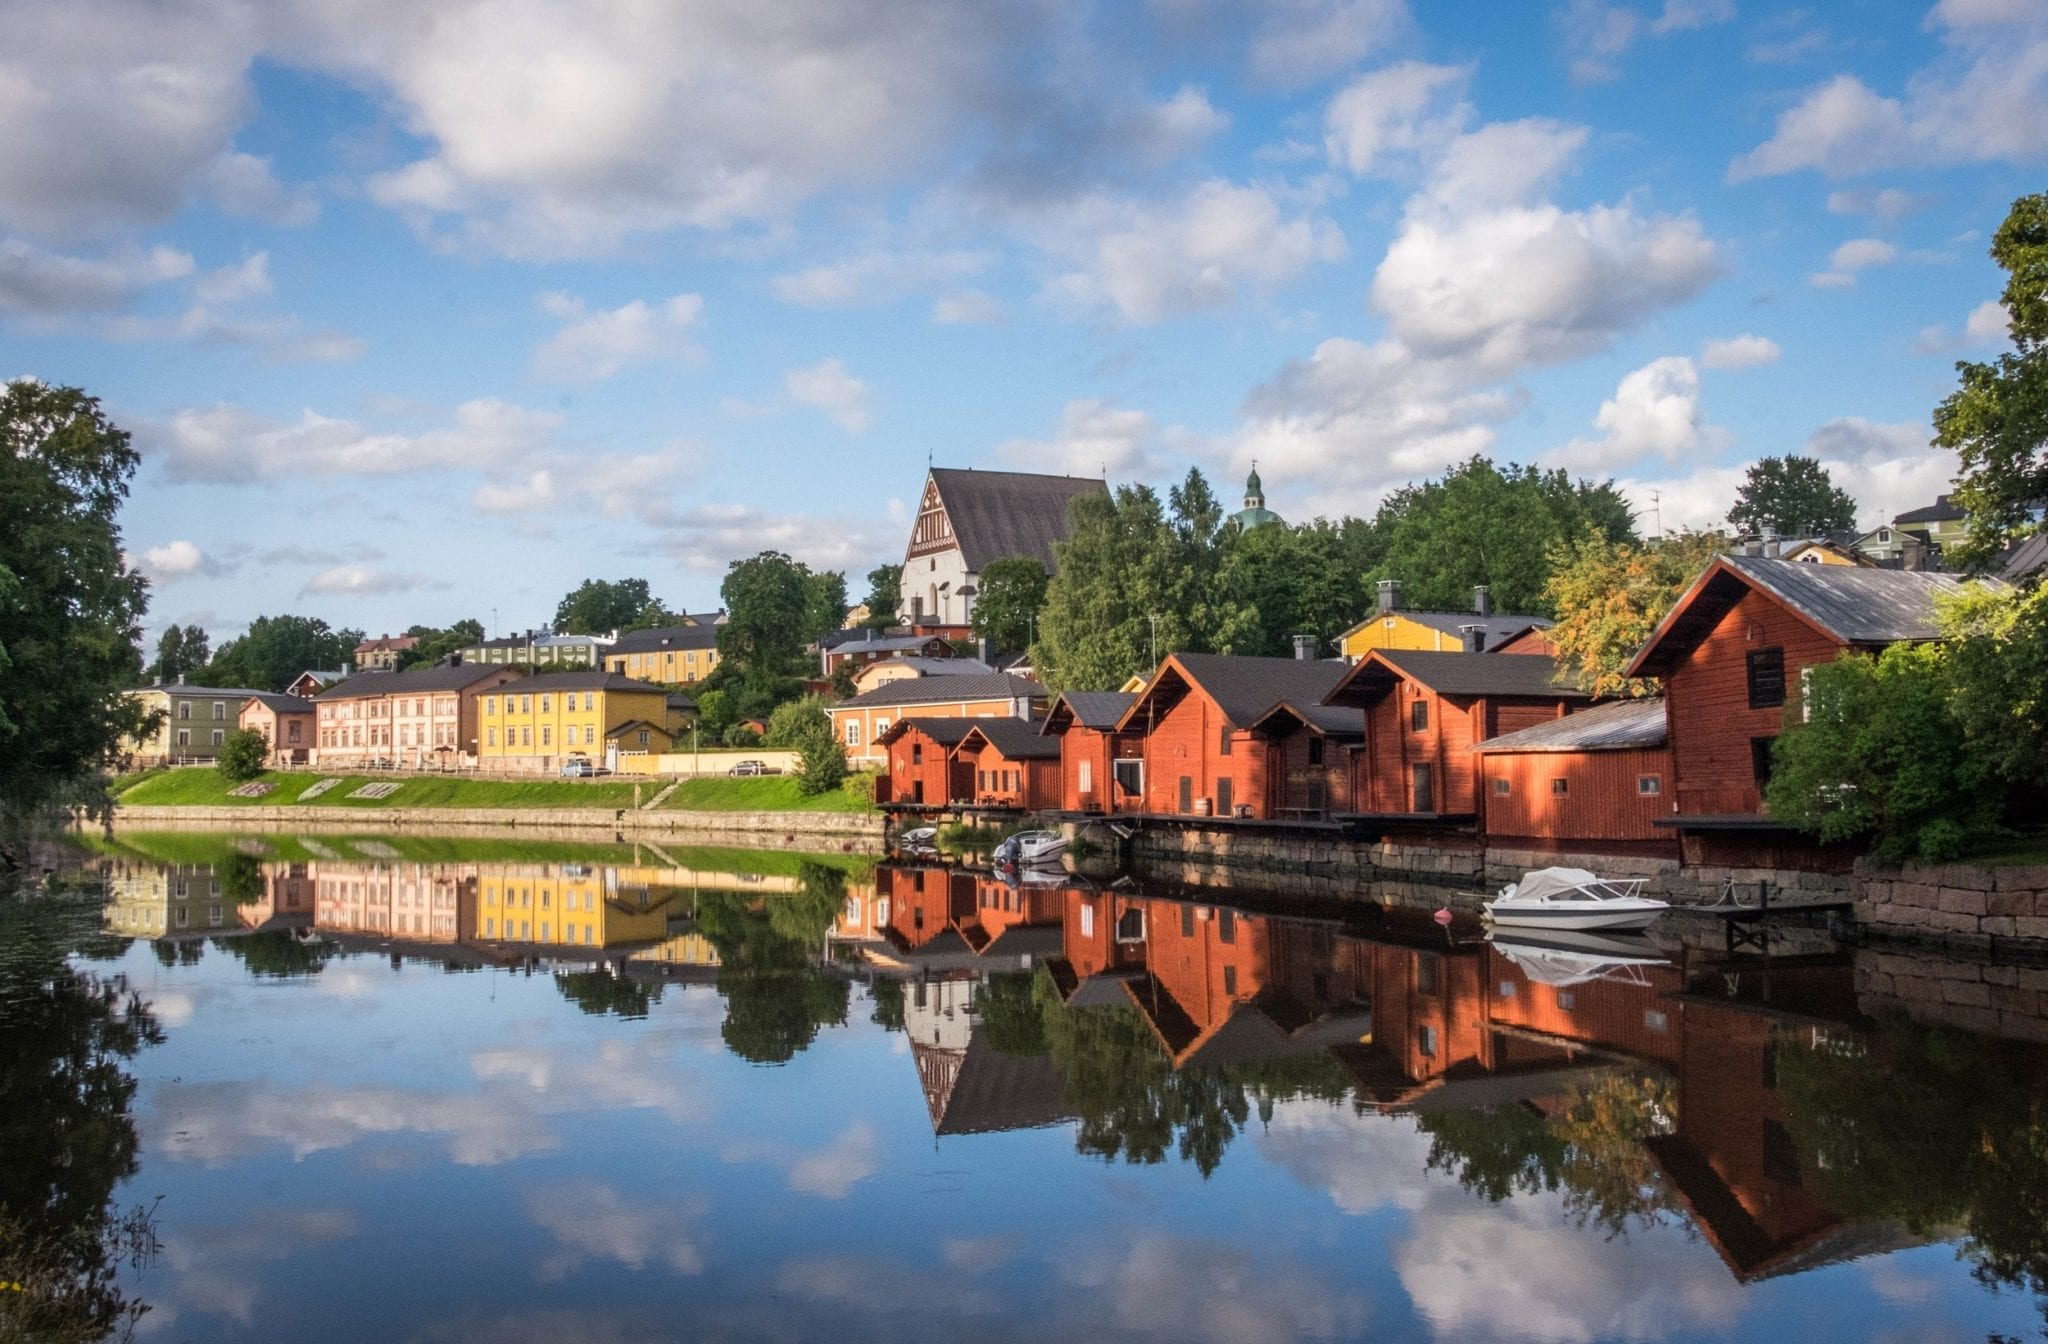 Fall Town Wallpaper Finland In The Summer Quirky Isolated And Pretty